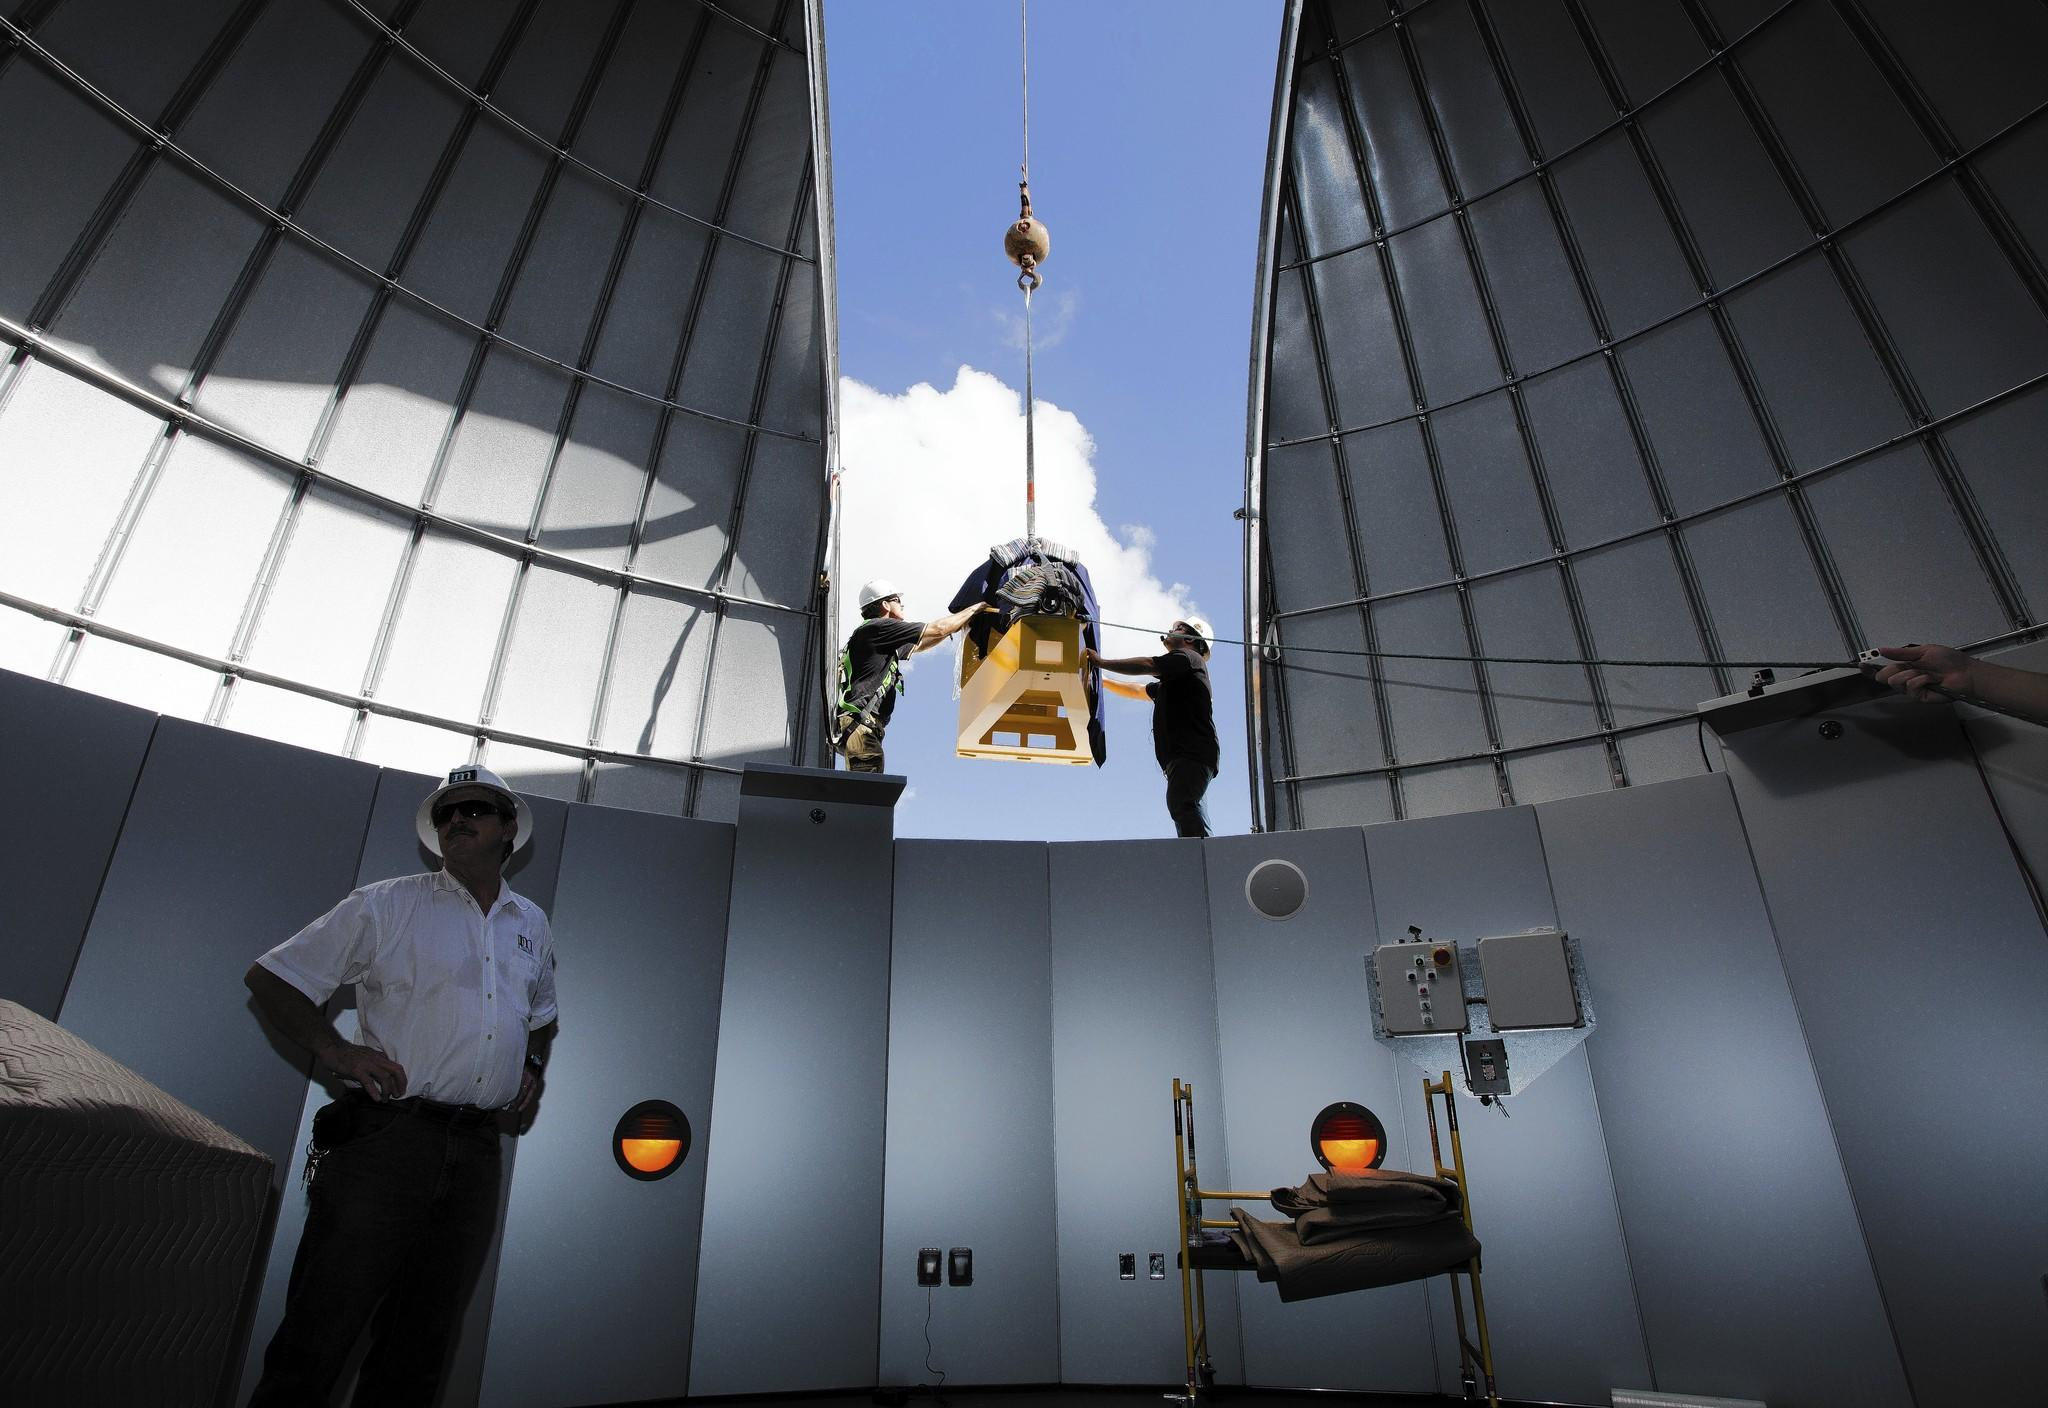 Workers install piece of $1 million telescope at Embry-Riddle in Daytona Beach